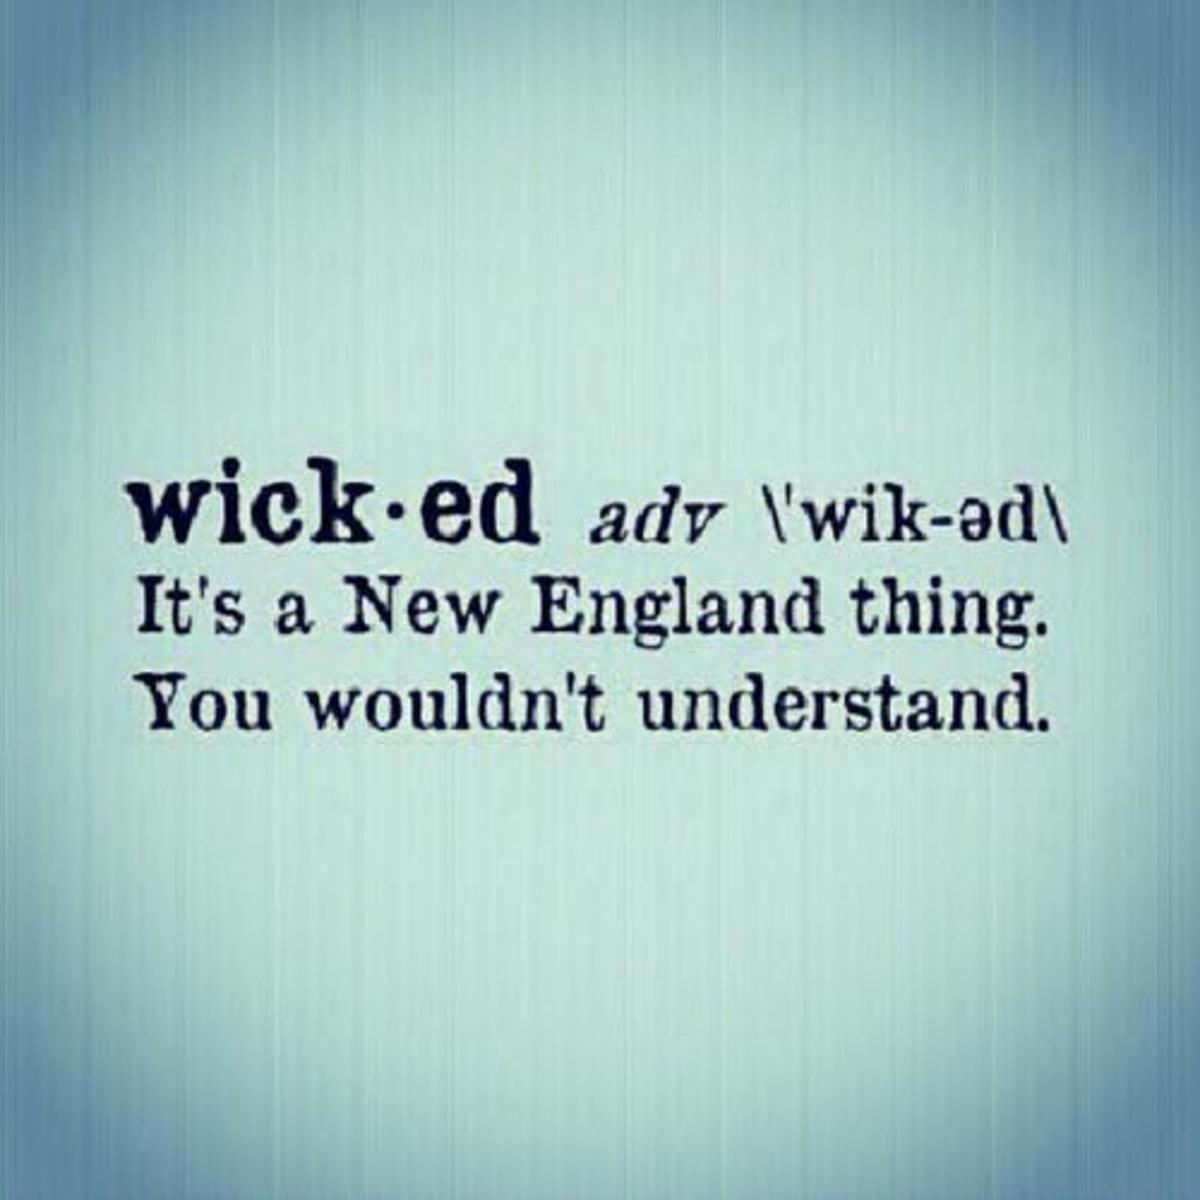 "Wicked Slang Origin: Why Does New England Say ""Wicked"" and What Does it Mean?"